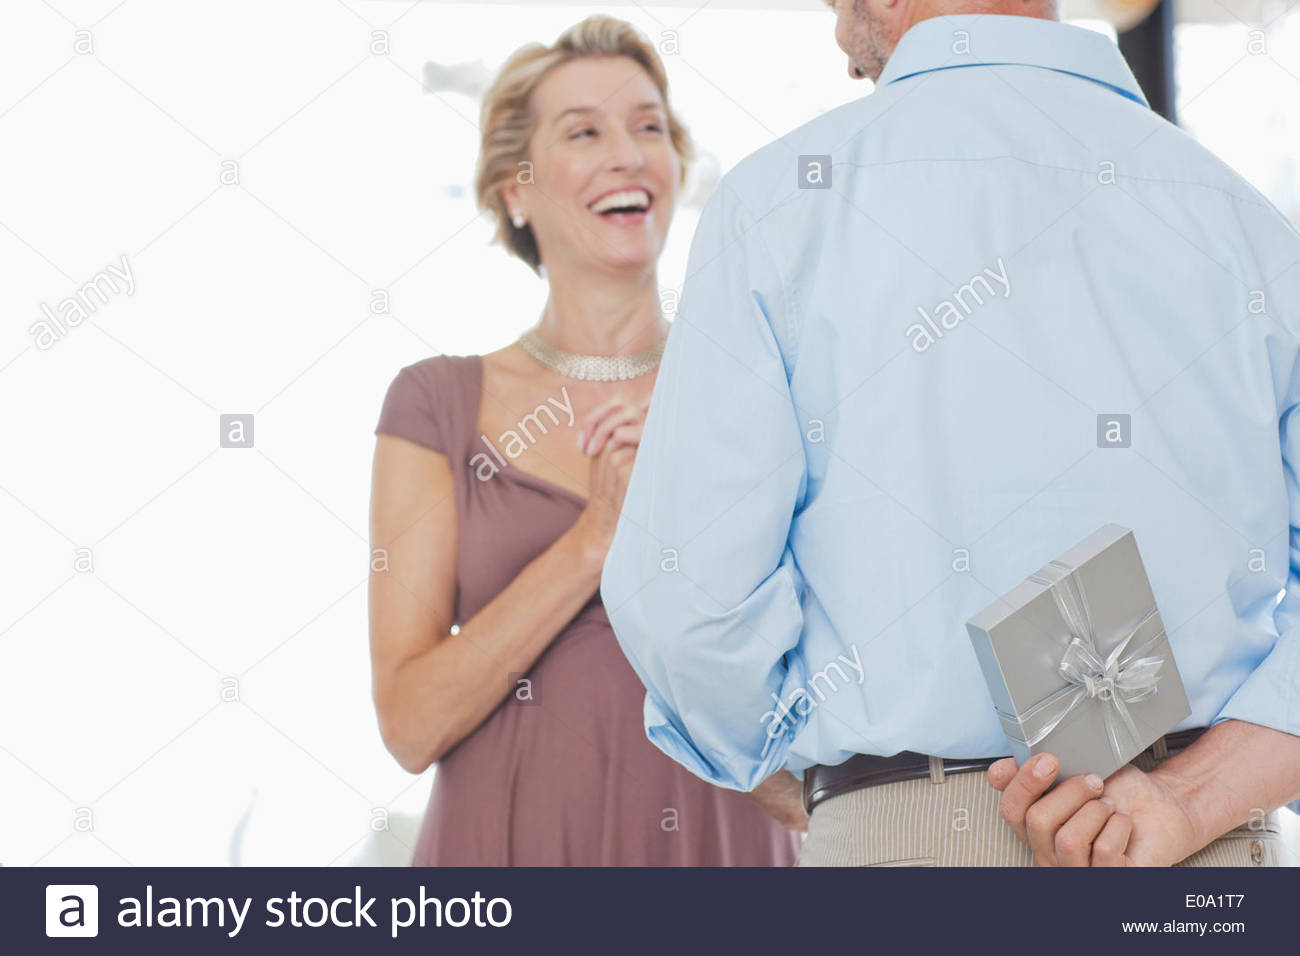 Man giving wife anniversary gift - Stock Image